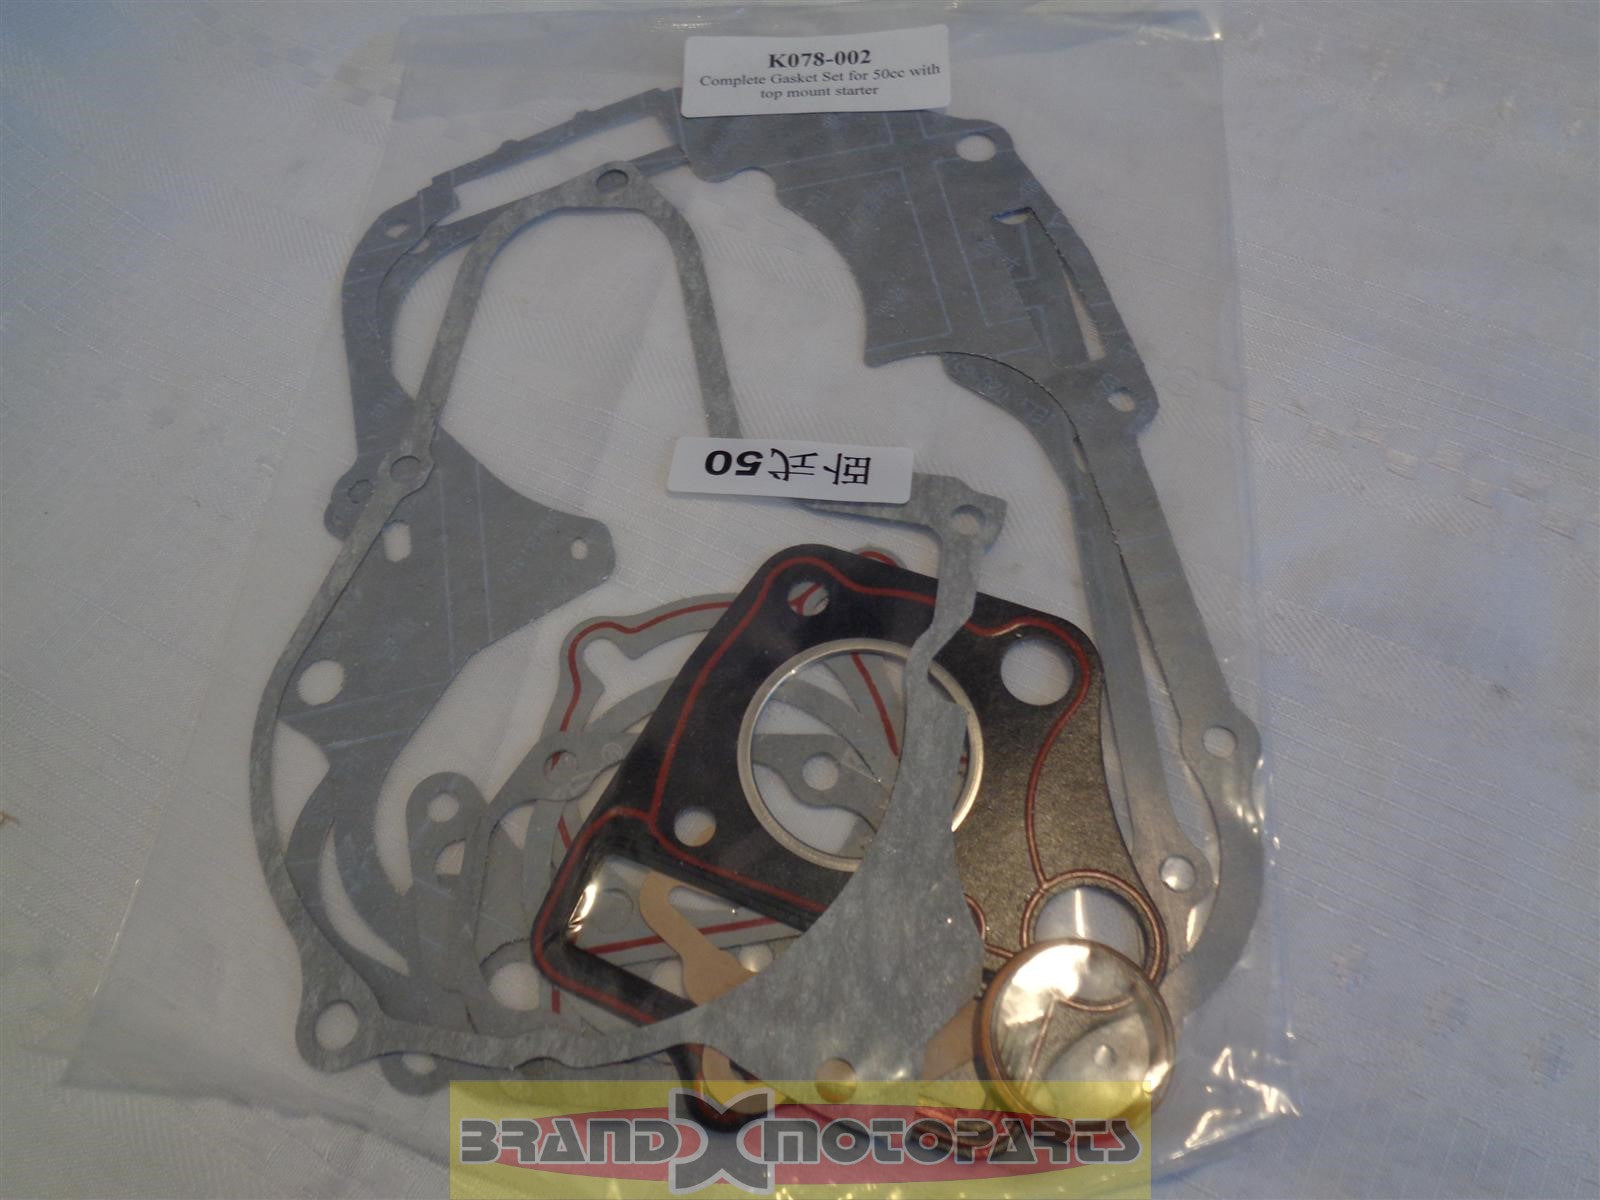 Complete Gasket Set for china 50cc with Top Mount Starter ATV, Quad, Pit Bike